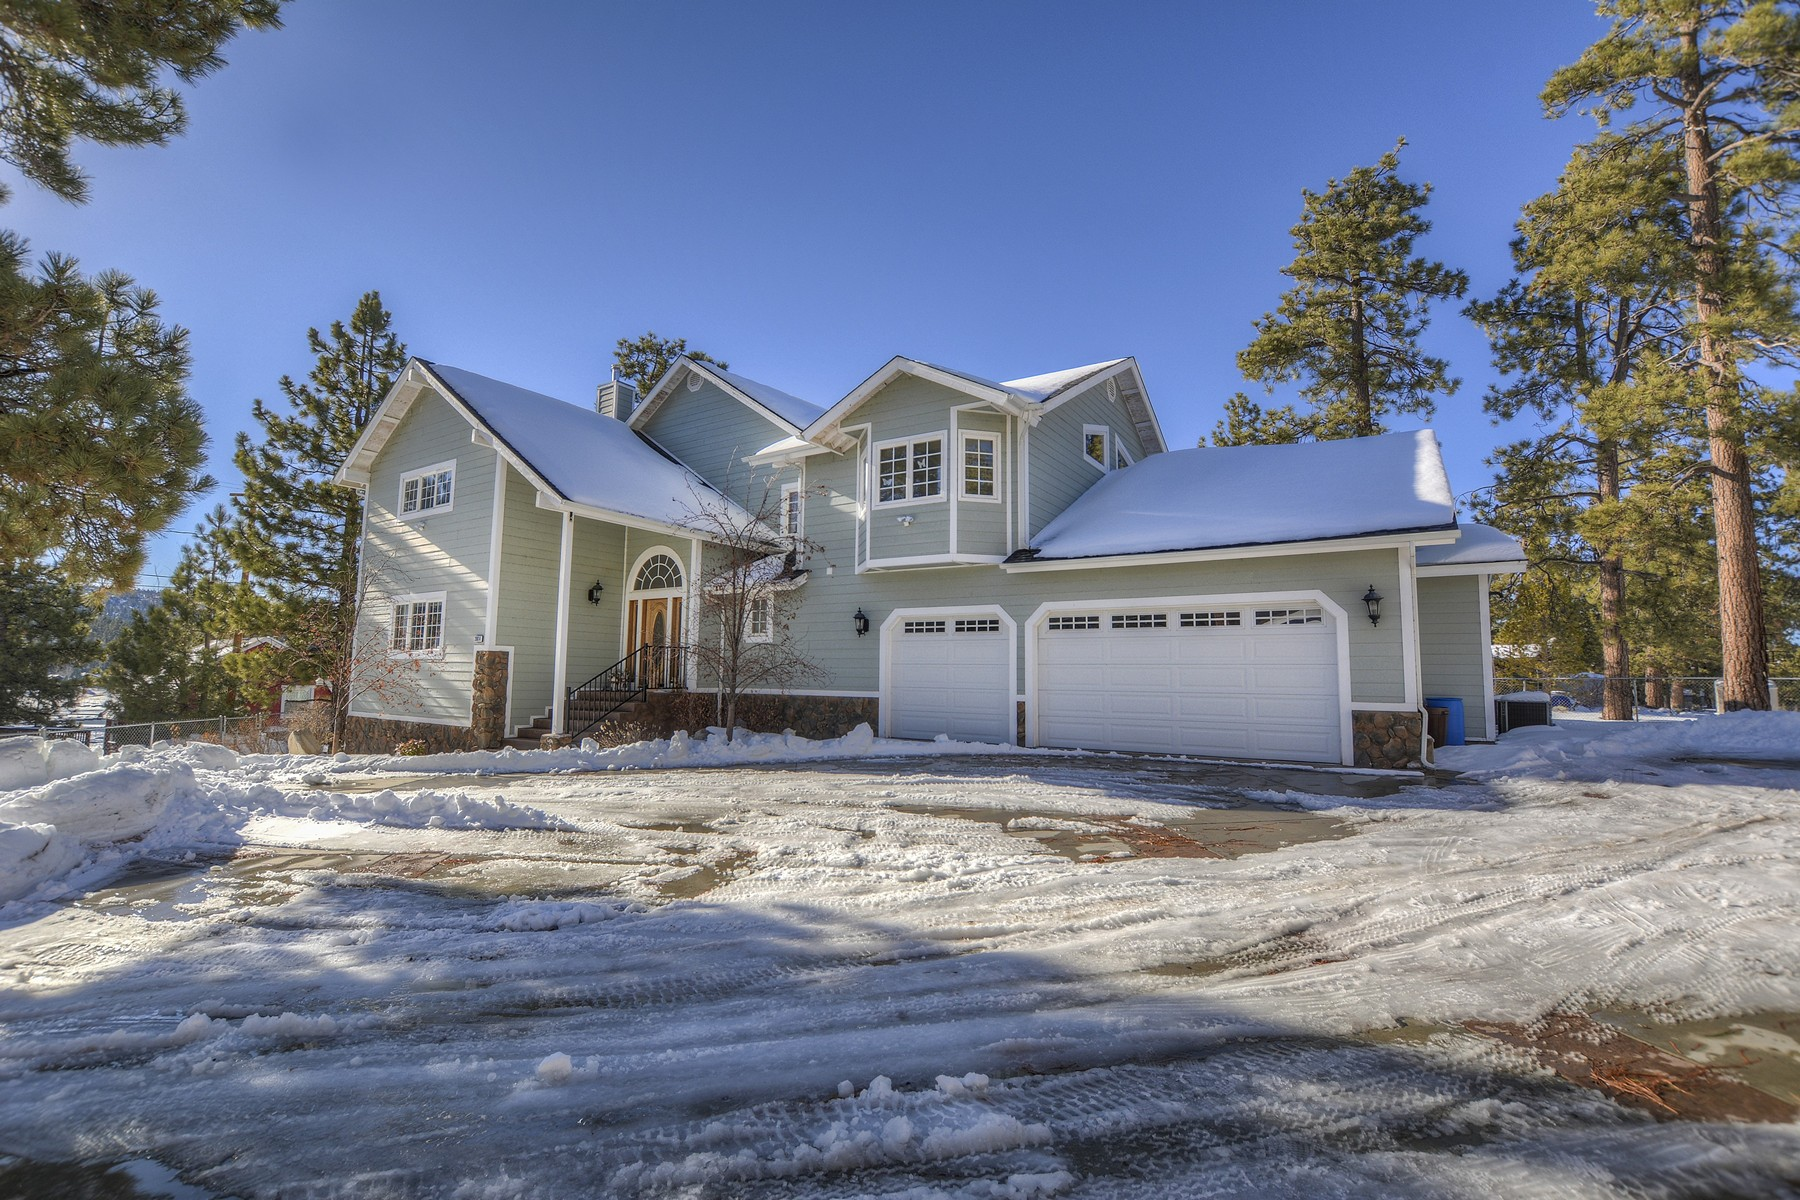 Single Family Home for Sale at Big Bear 39614 Lake Drive Big Bear Lake, California 92315 United States